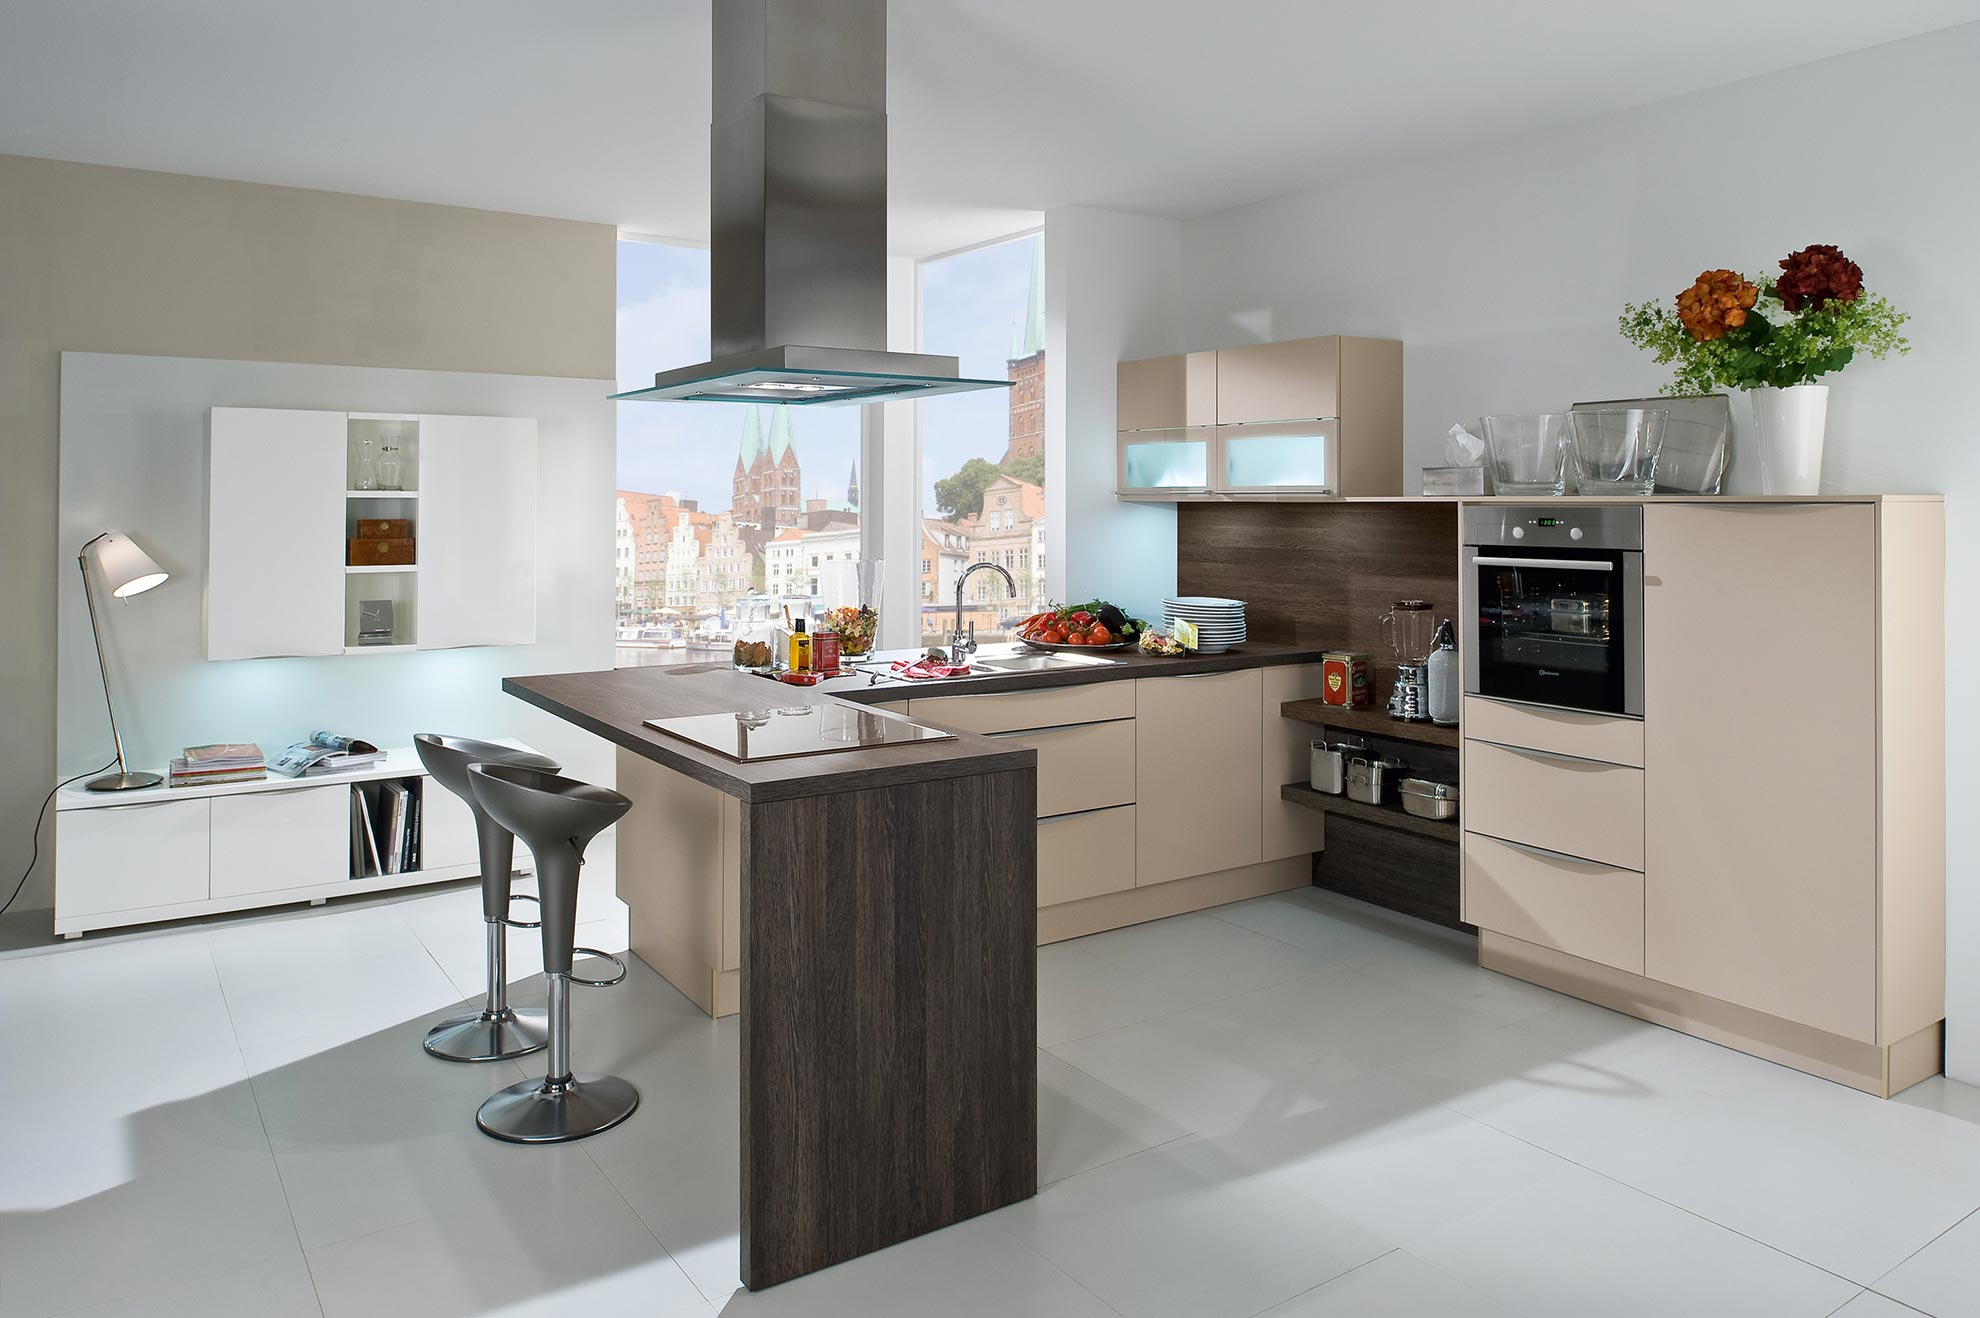 Kitchens bedford hertfordshire bedfordshire fitted for Cuisine equipee avec bar